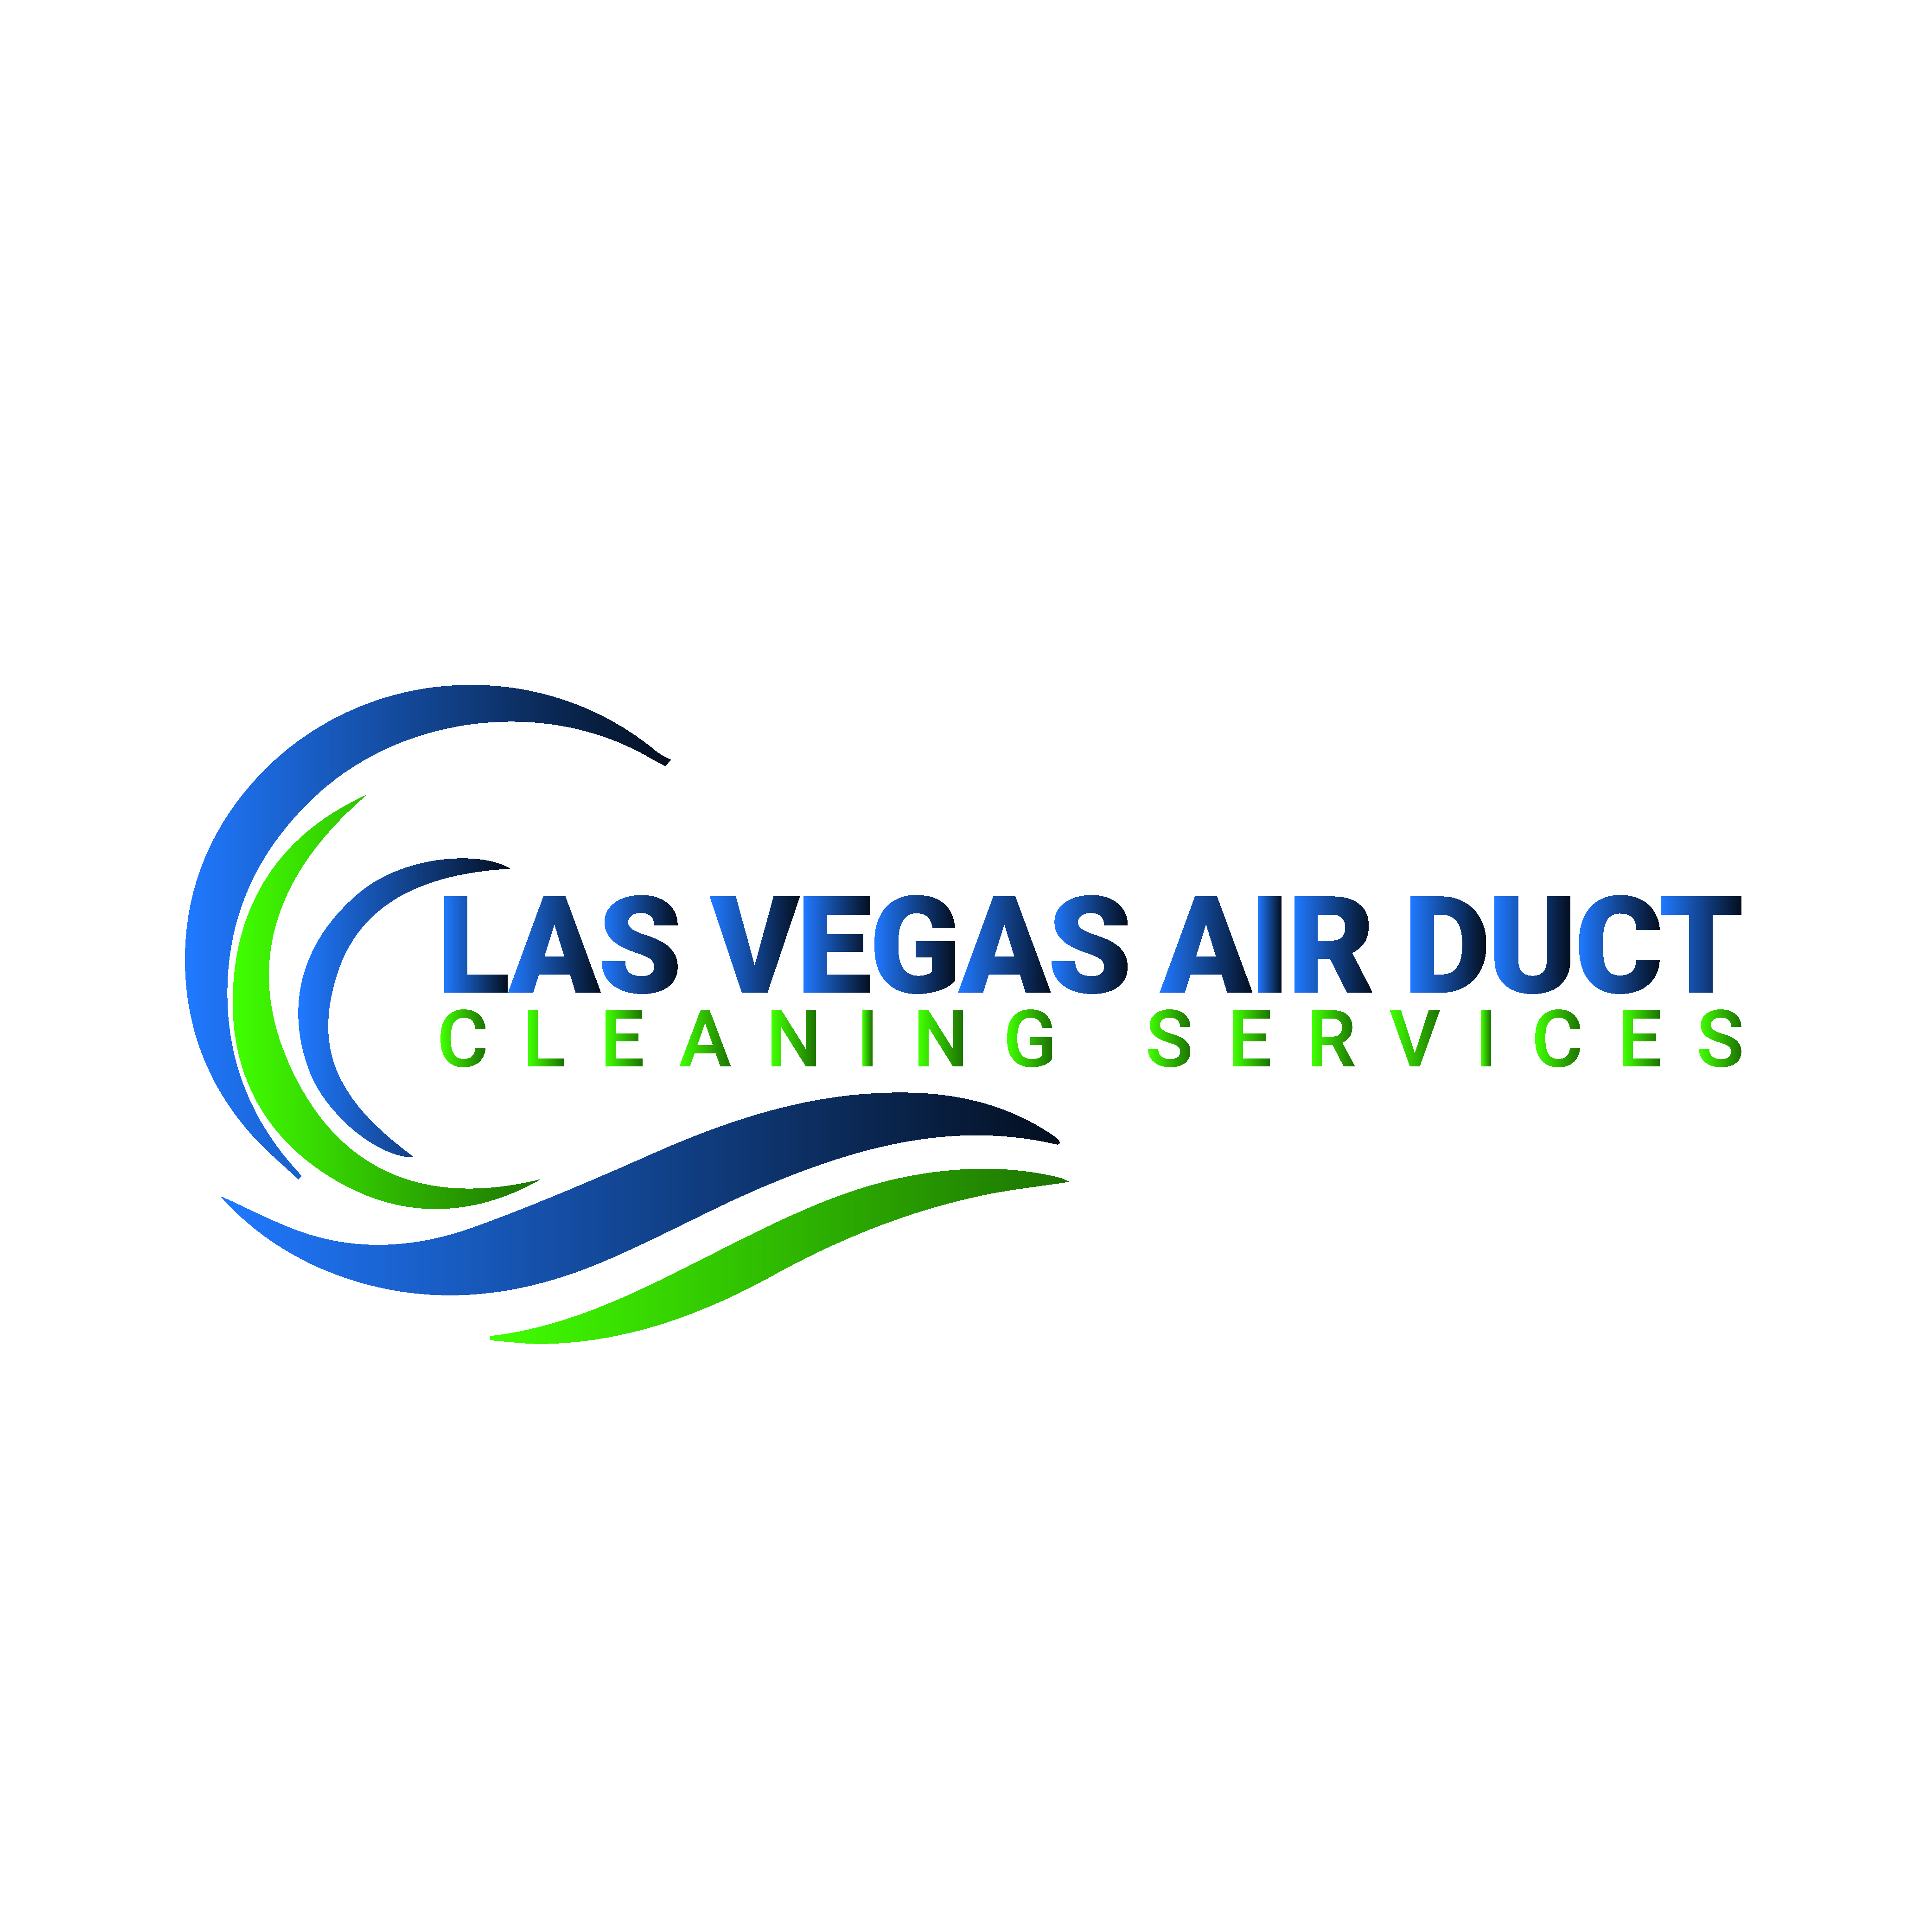 Las Vegas Air Duct Cleaning Services